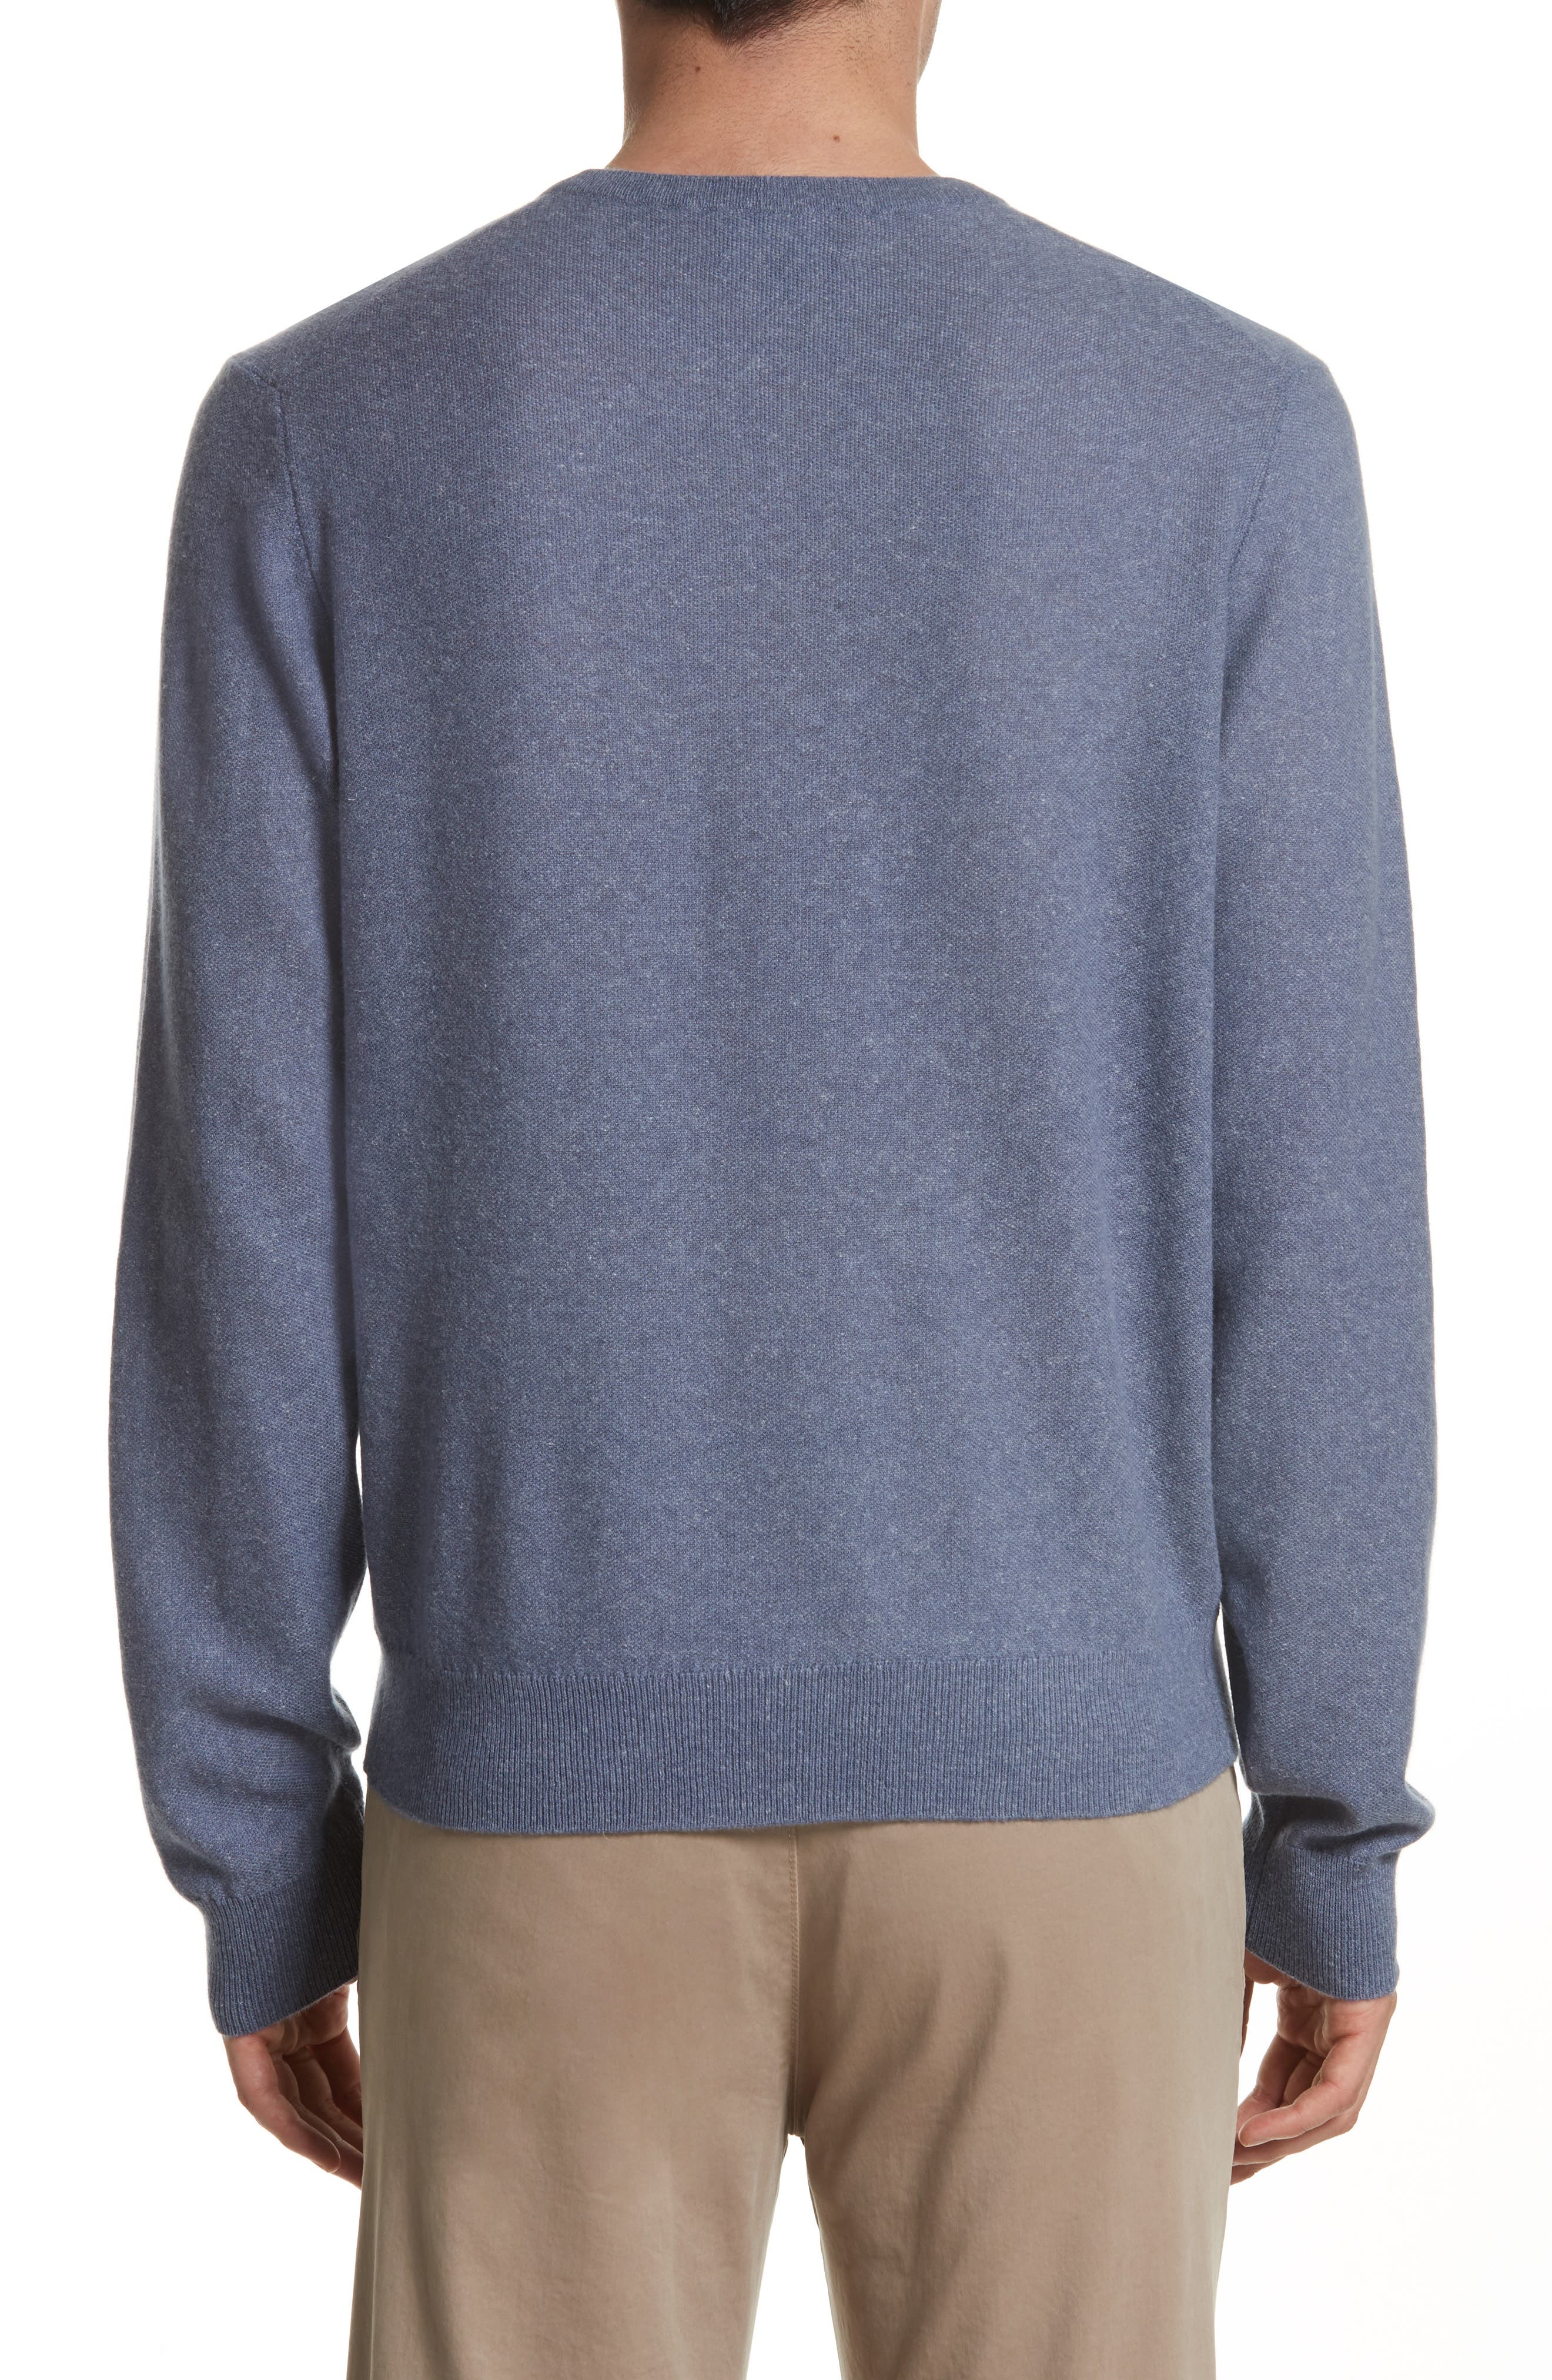 Cashmere & Linen Crewneck Sweater,                             Alternate thumbnail 2, color,                             475